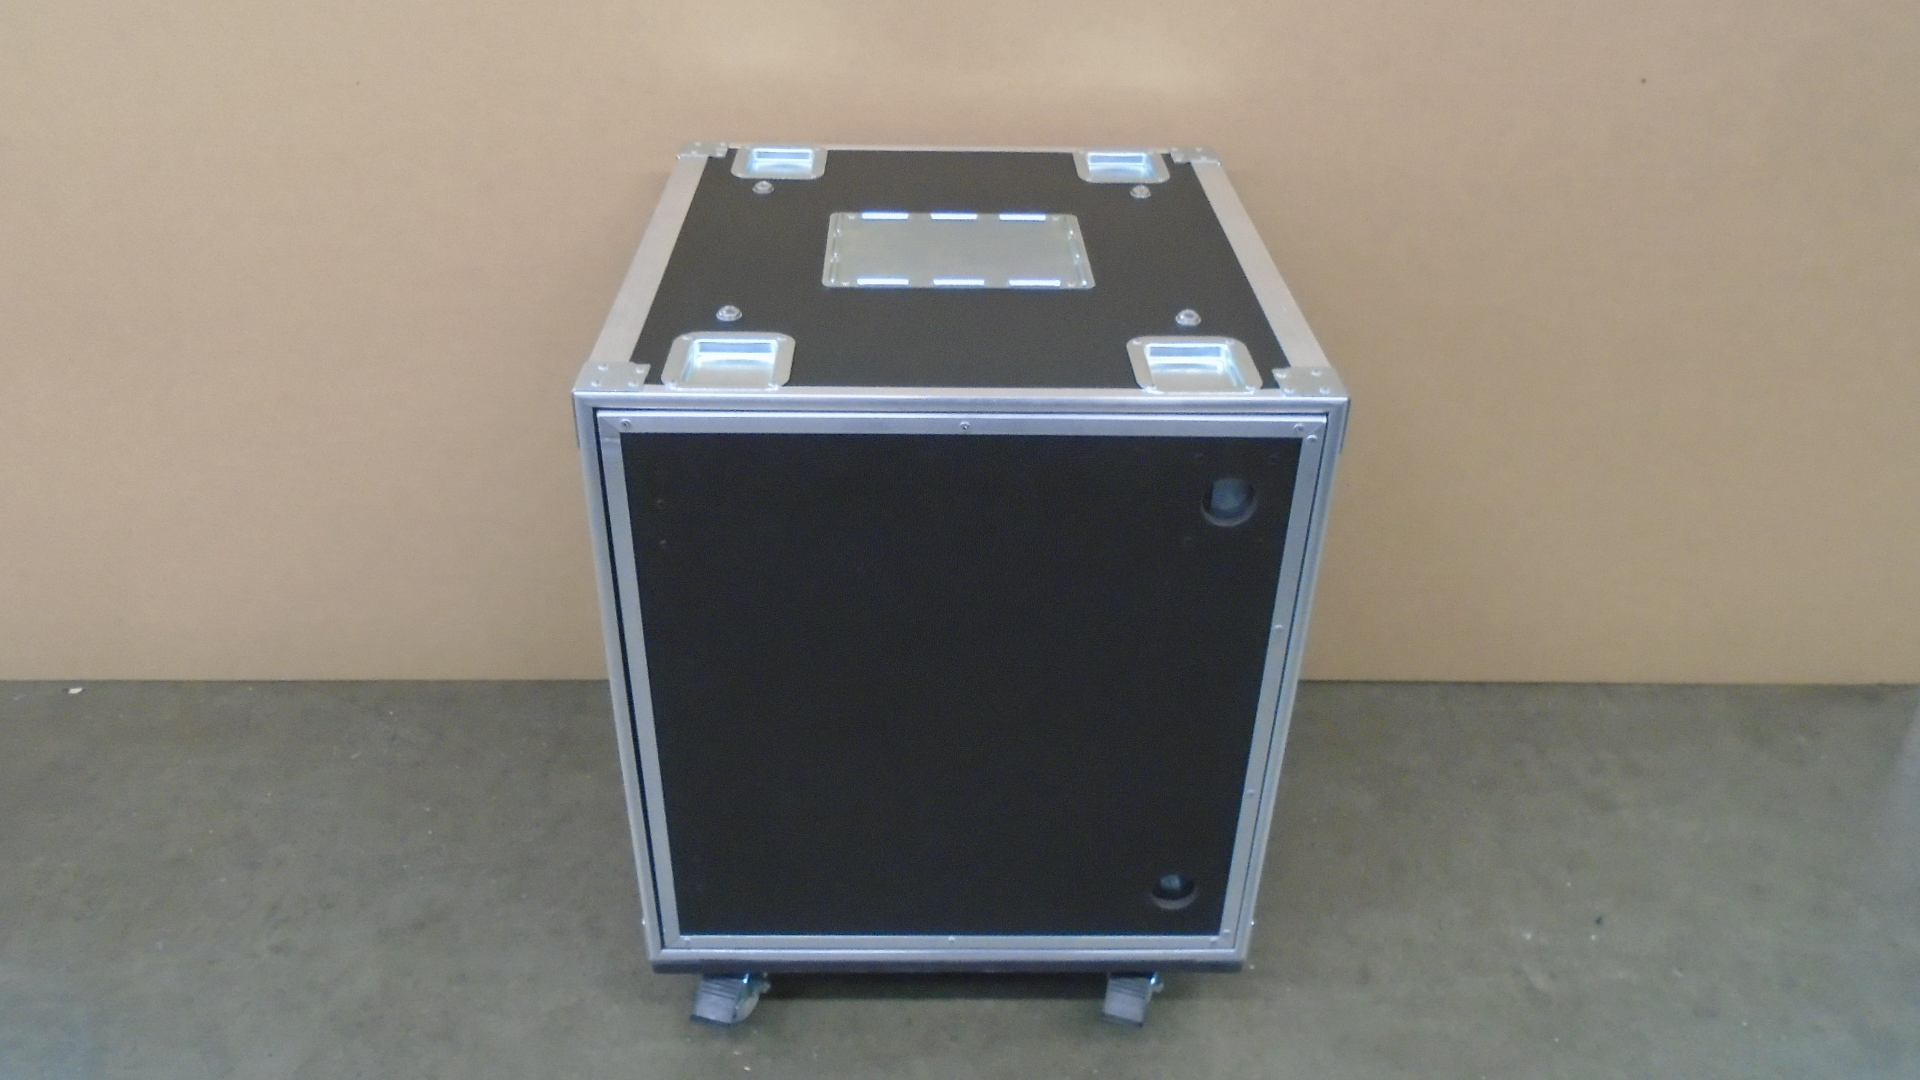 Print # 7614 - Custom 12-RU Shock Mount Road Rack with Pocket Door System By Nelson Case Corp